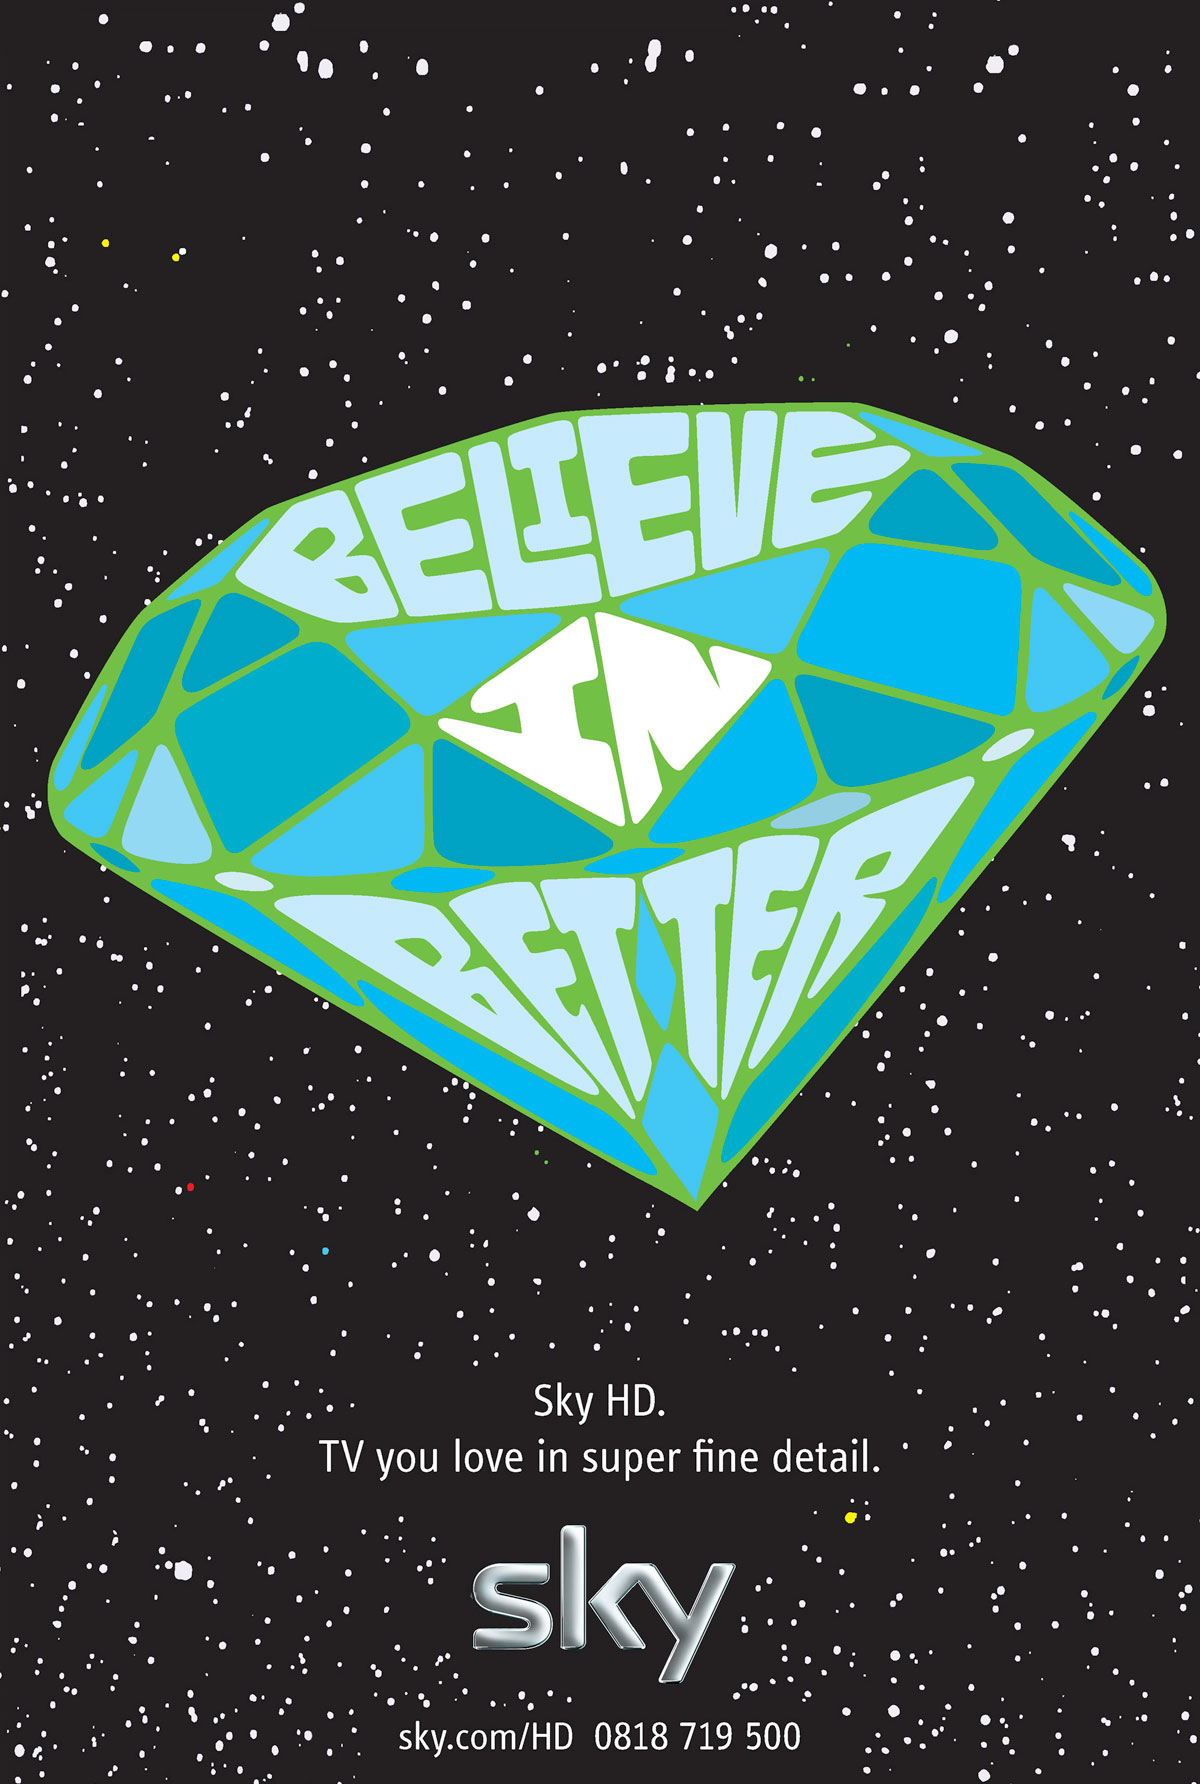 Studio Oscar - SKY BELIEVE IN BETTER